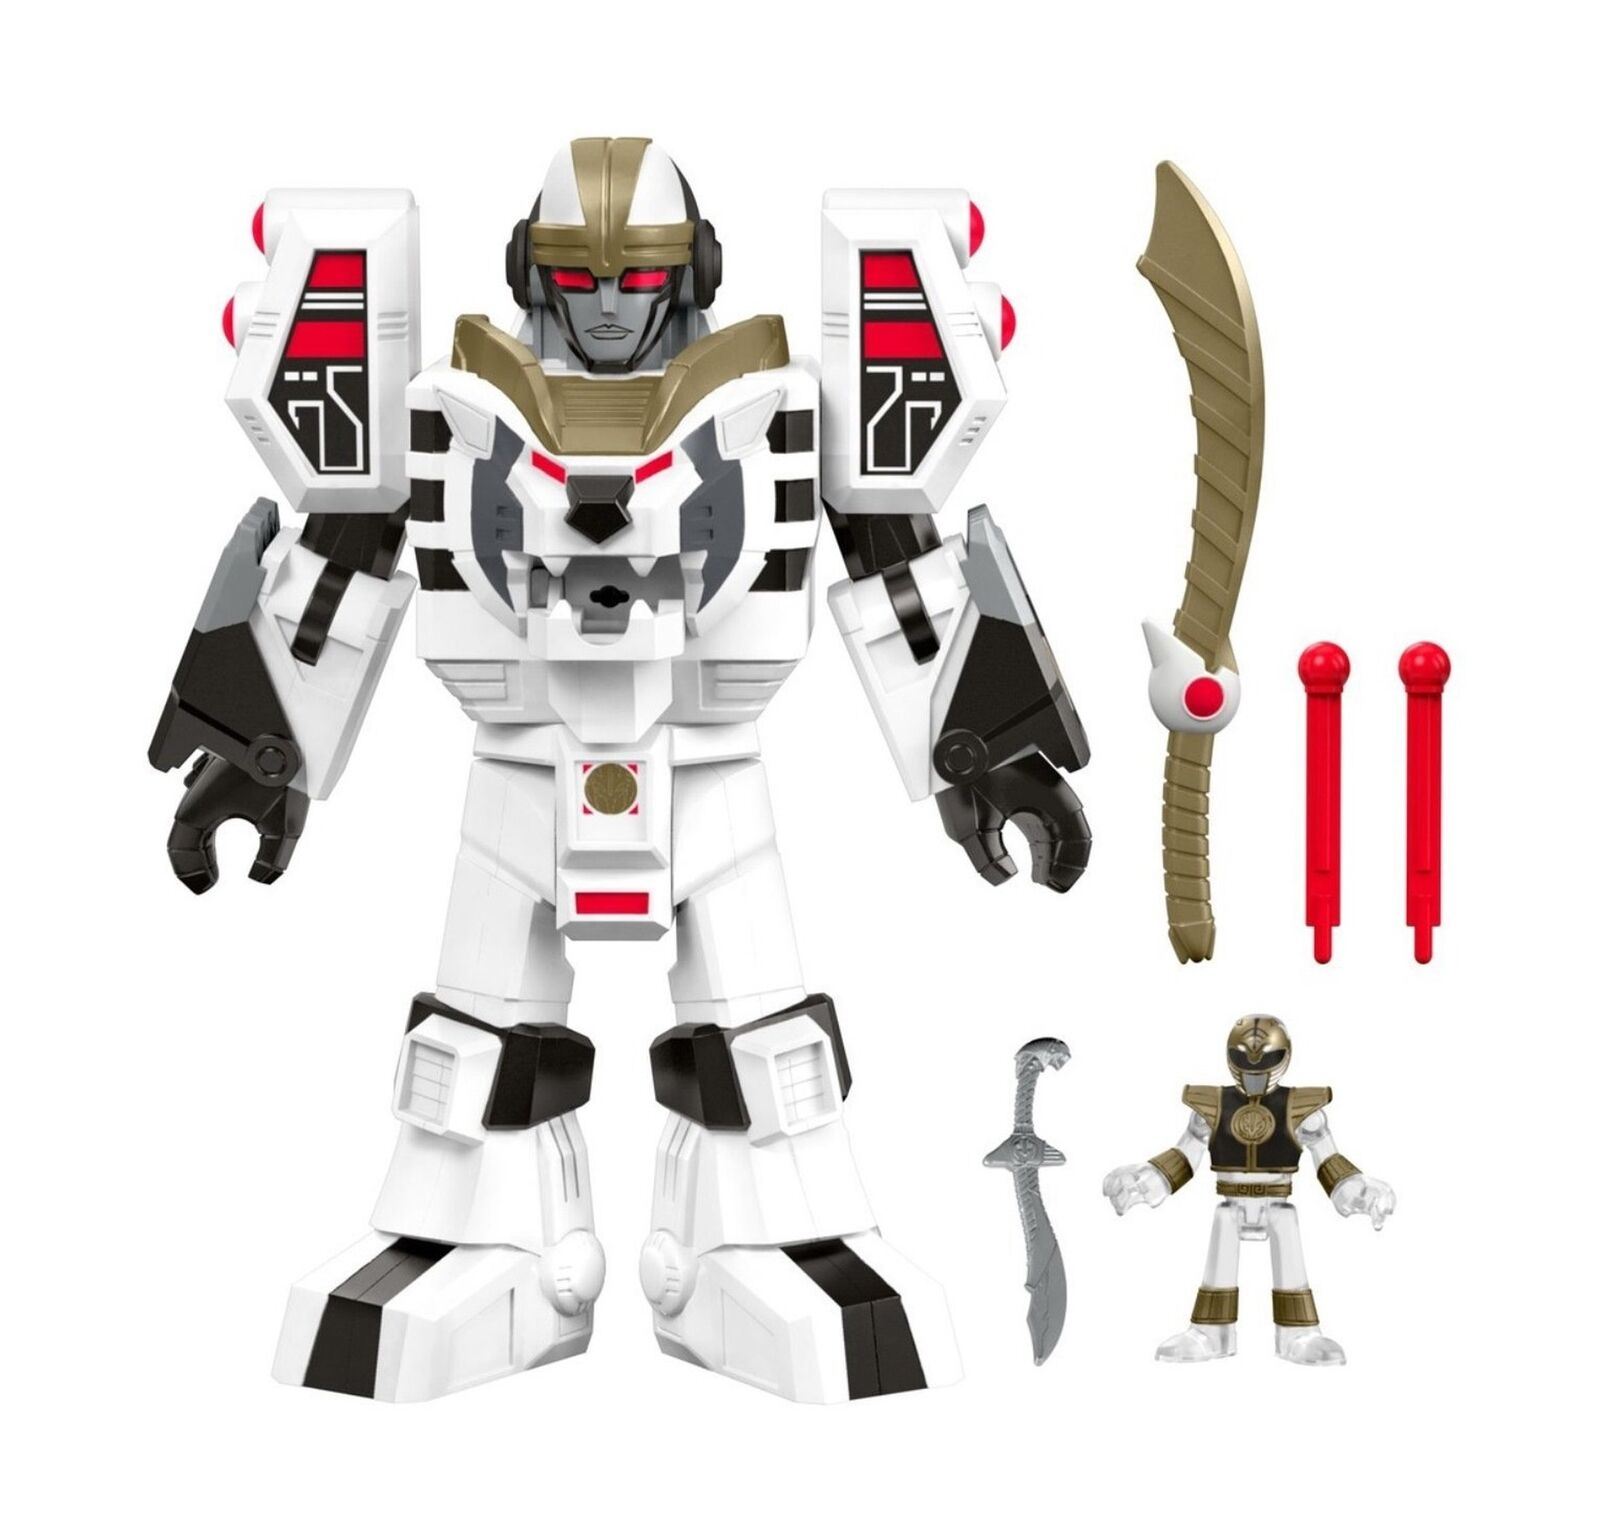 Fisher-price Imaginext power rangers tigerzord blancoo modo Ranger & Guerrero